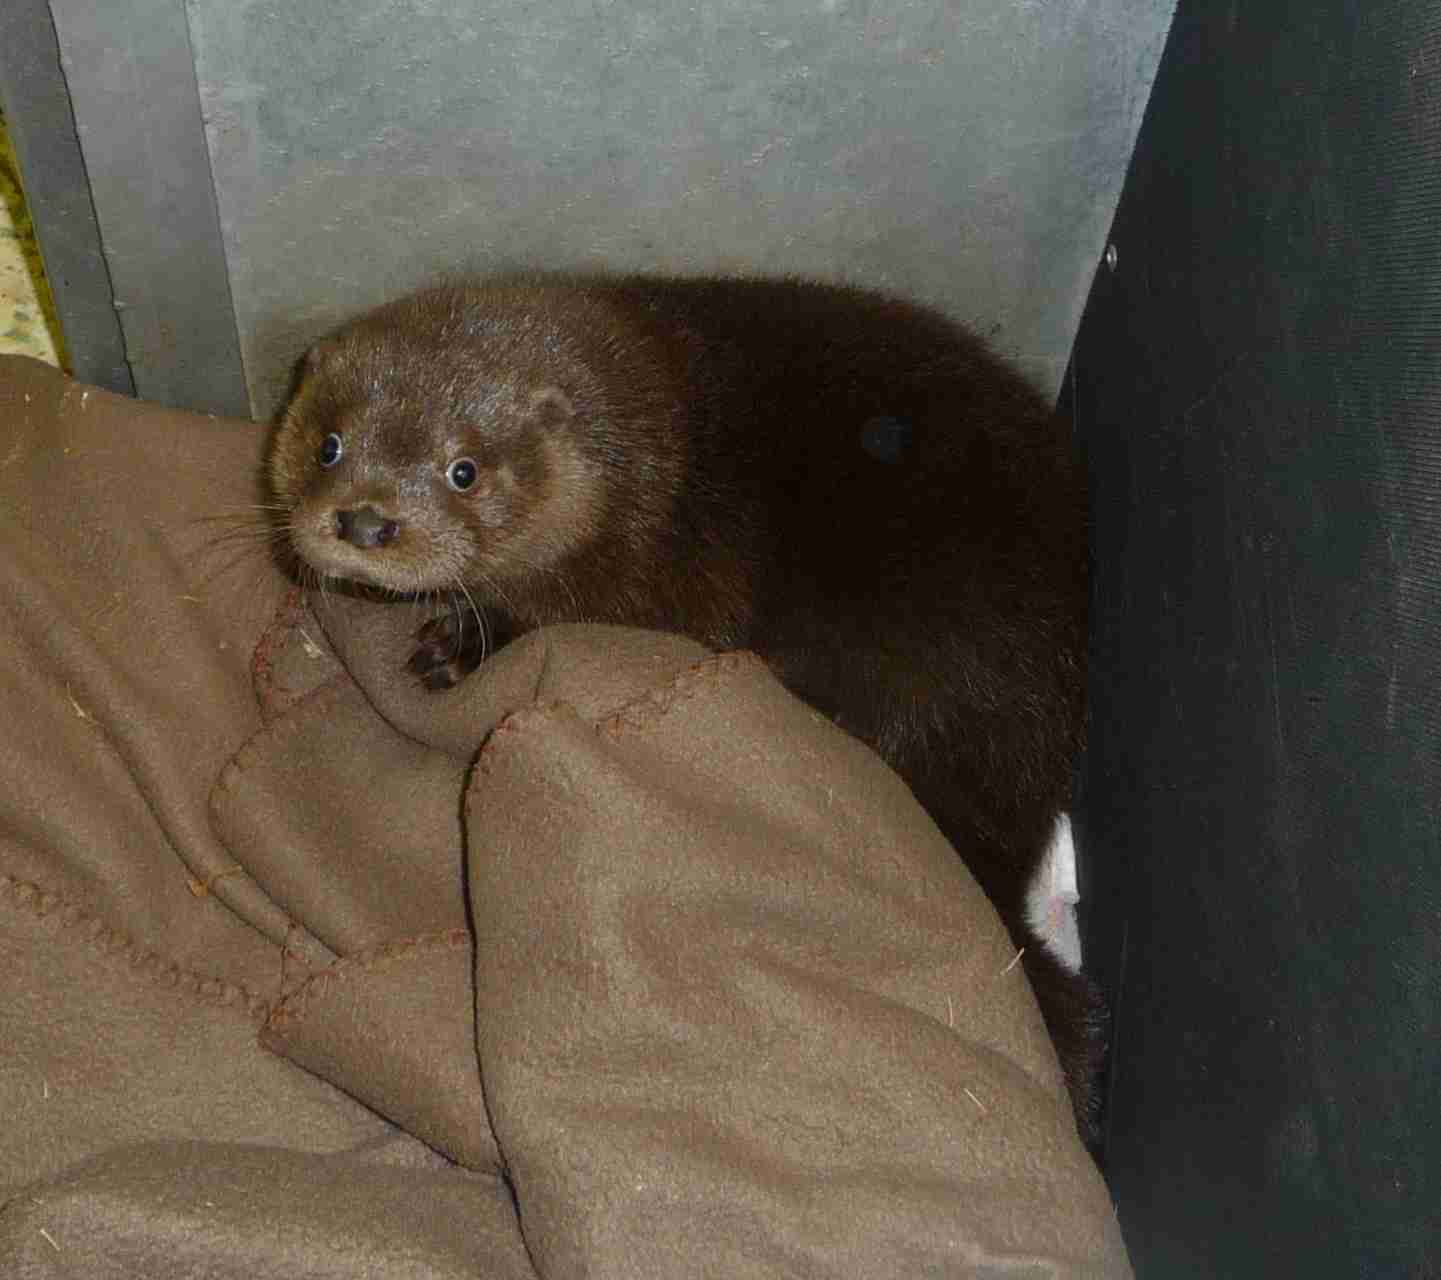 Amoré the Otter Returns to Secret World with a Friend